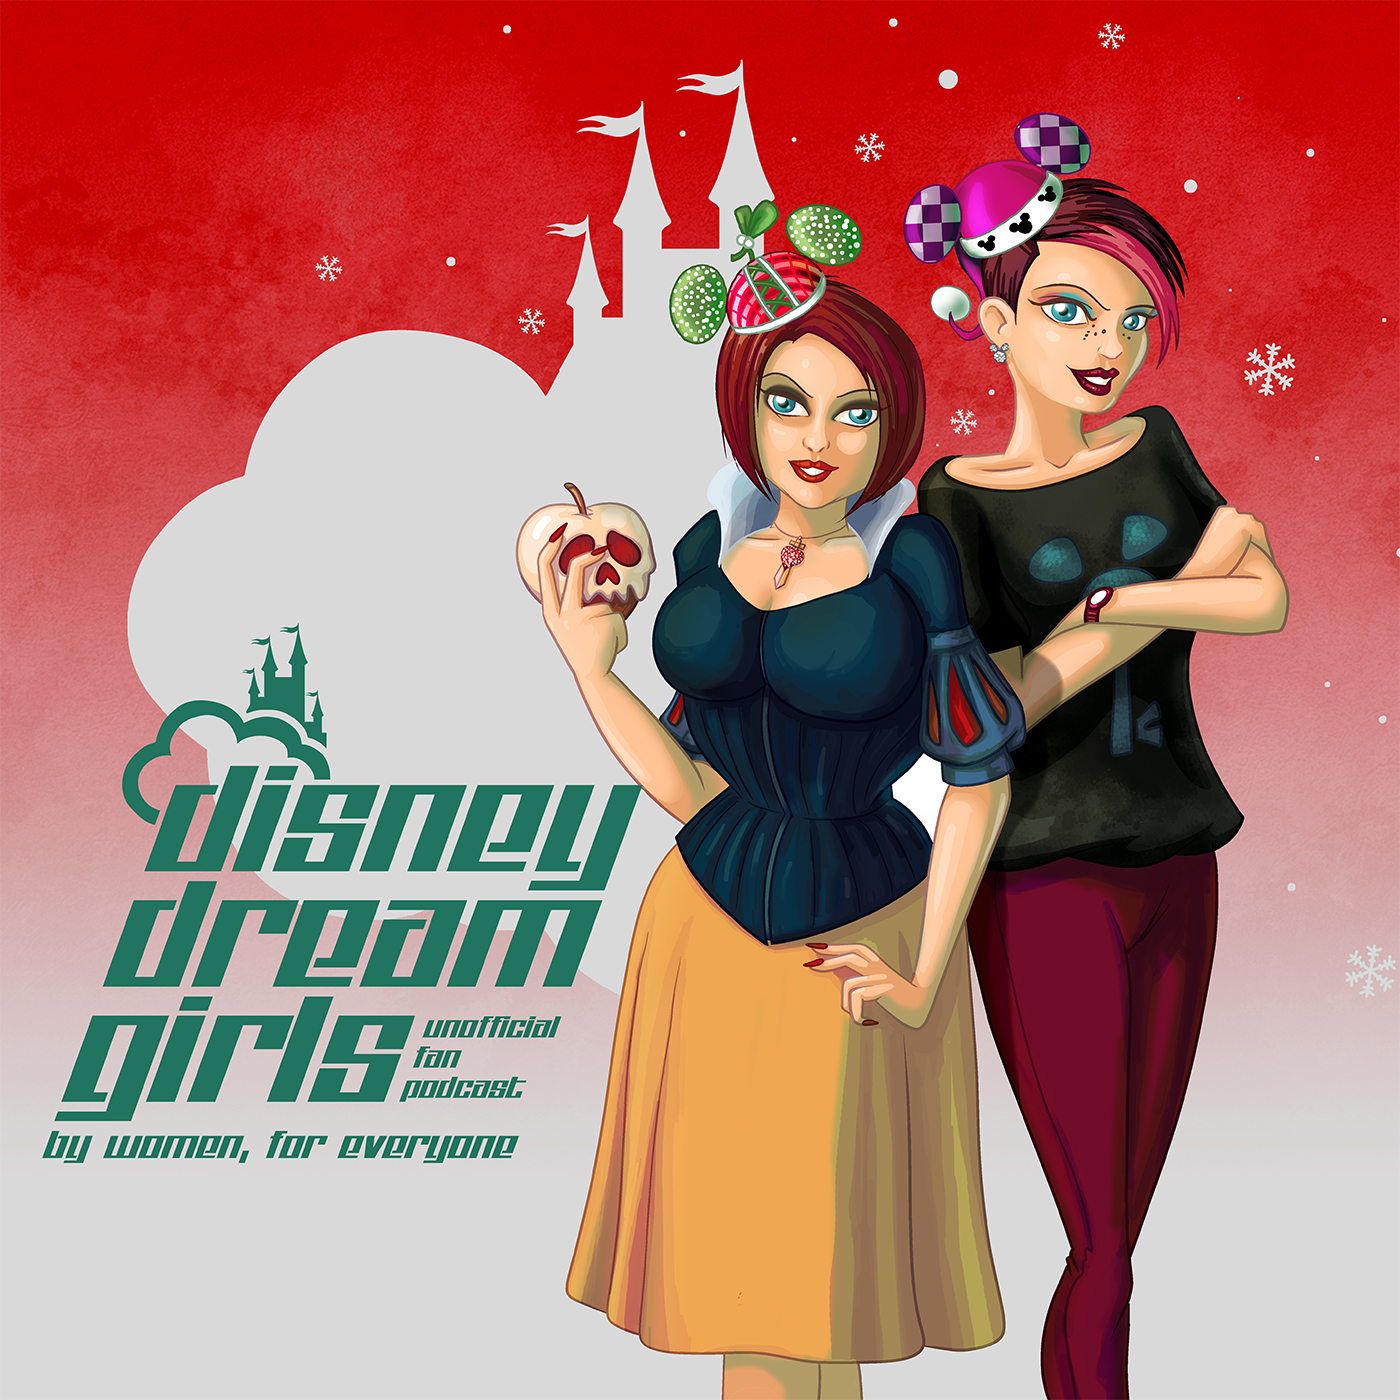 Disney Dream Girls 077 - Minxmas with the Enchanted Tiki Talk Podcast